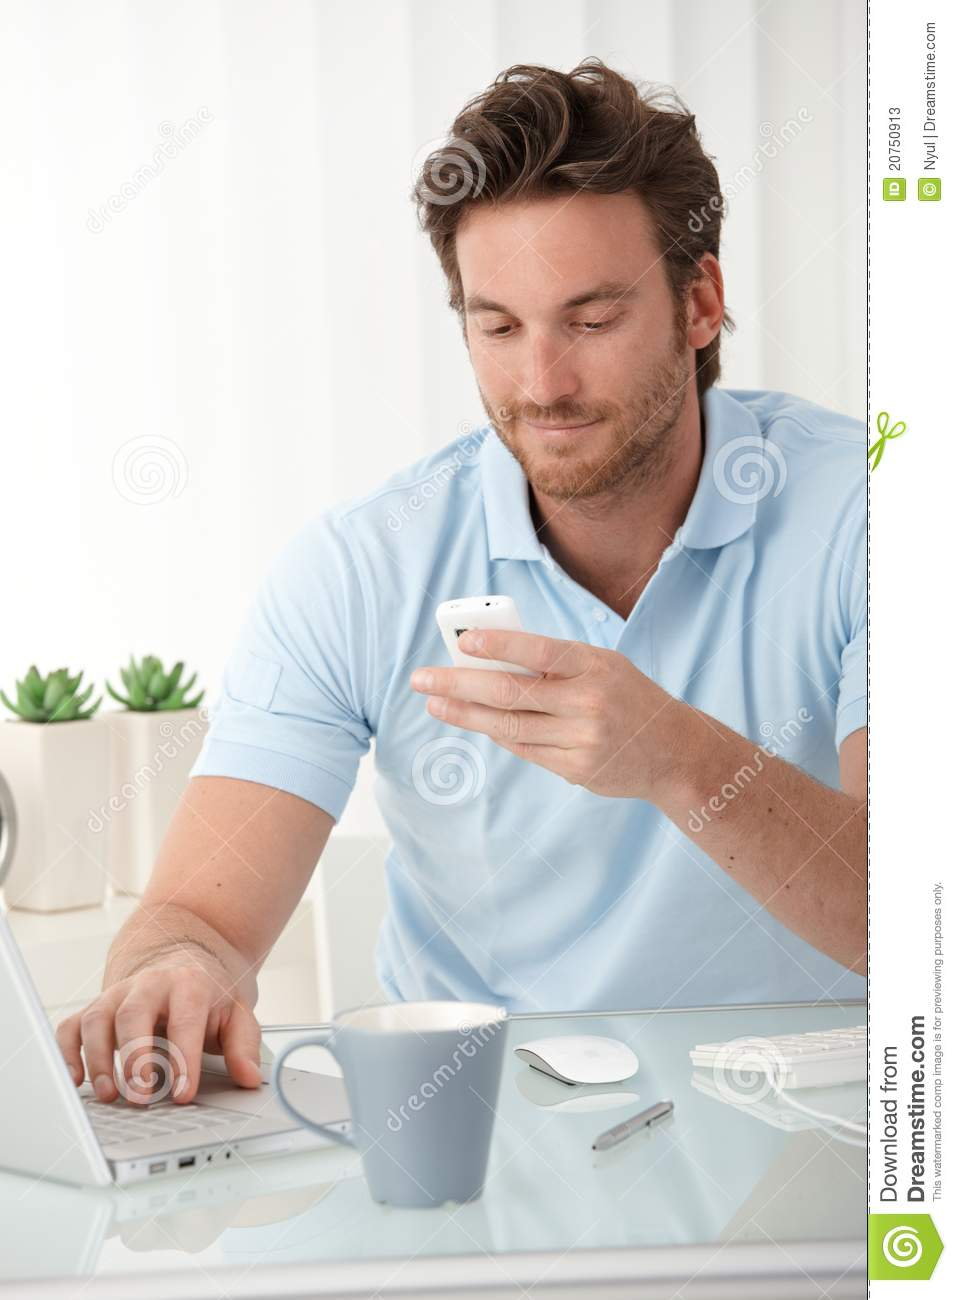 Man On Cell Phone : Smiling man texting on mobile phone stock photos image